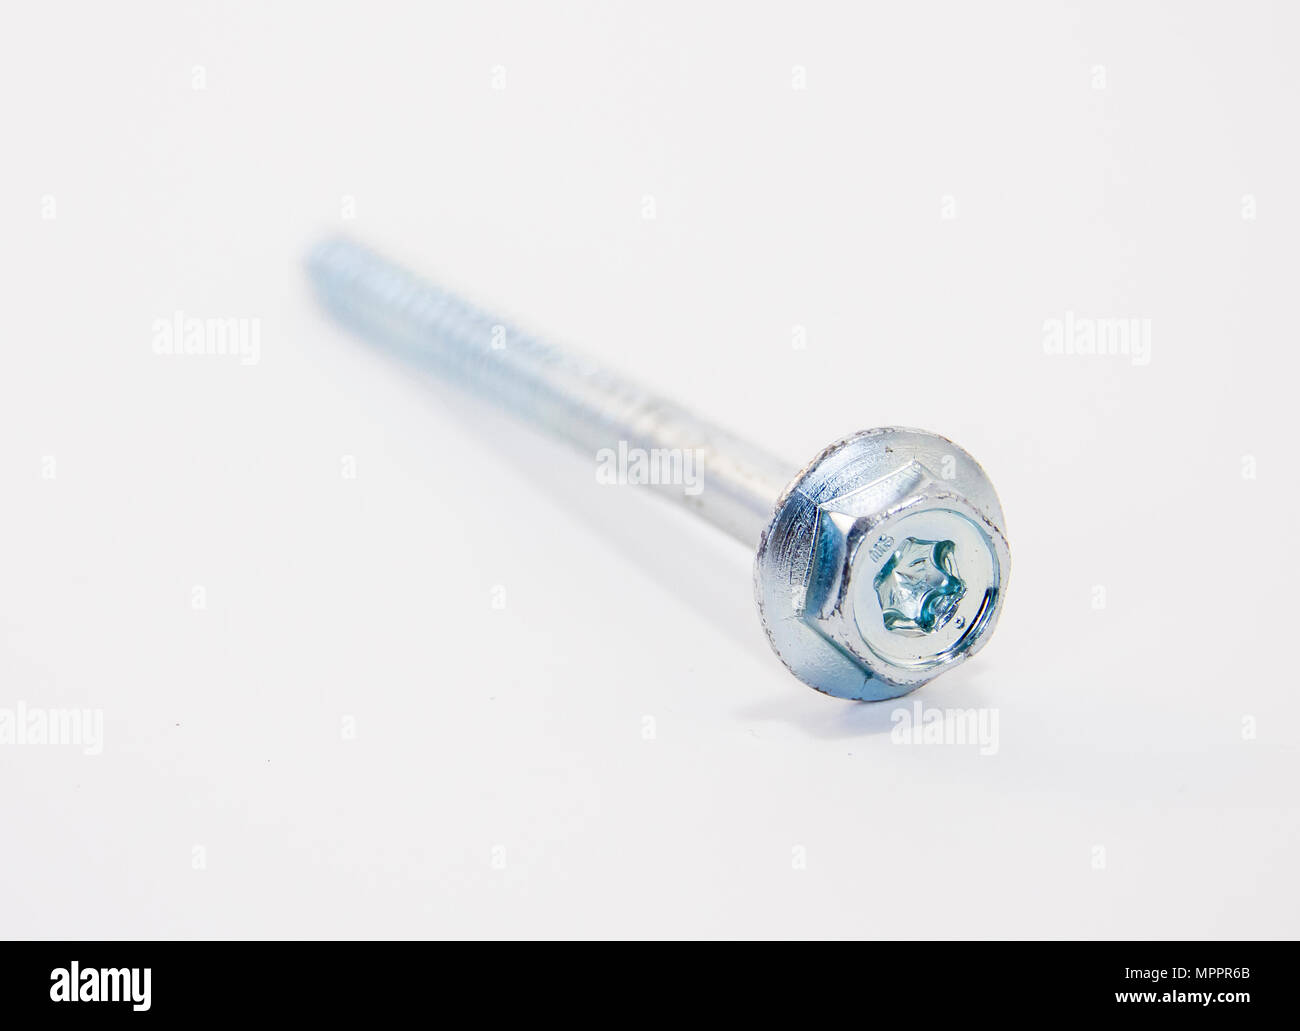 One metal self-tapping screw on white background - Stock Image